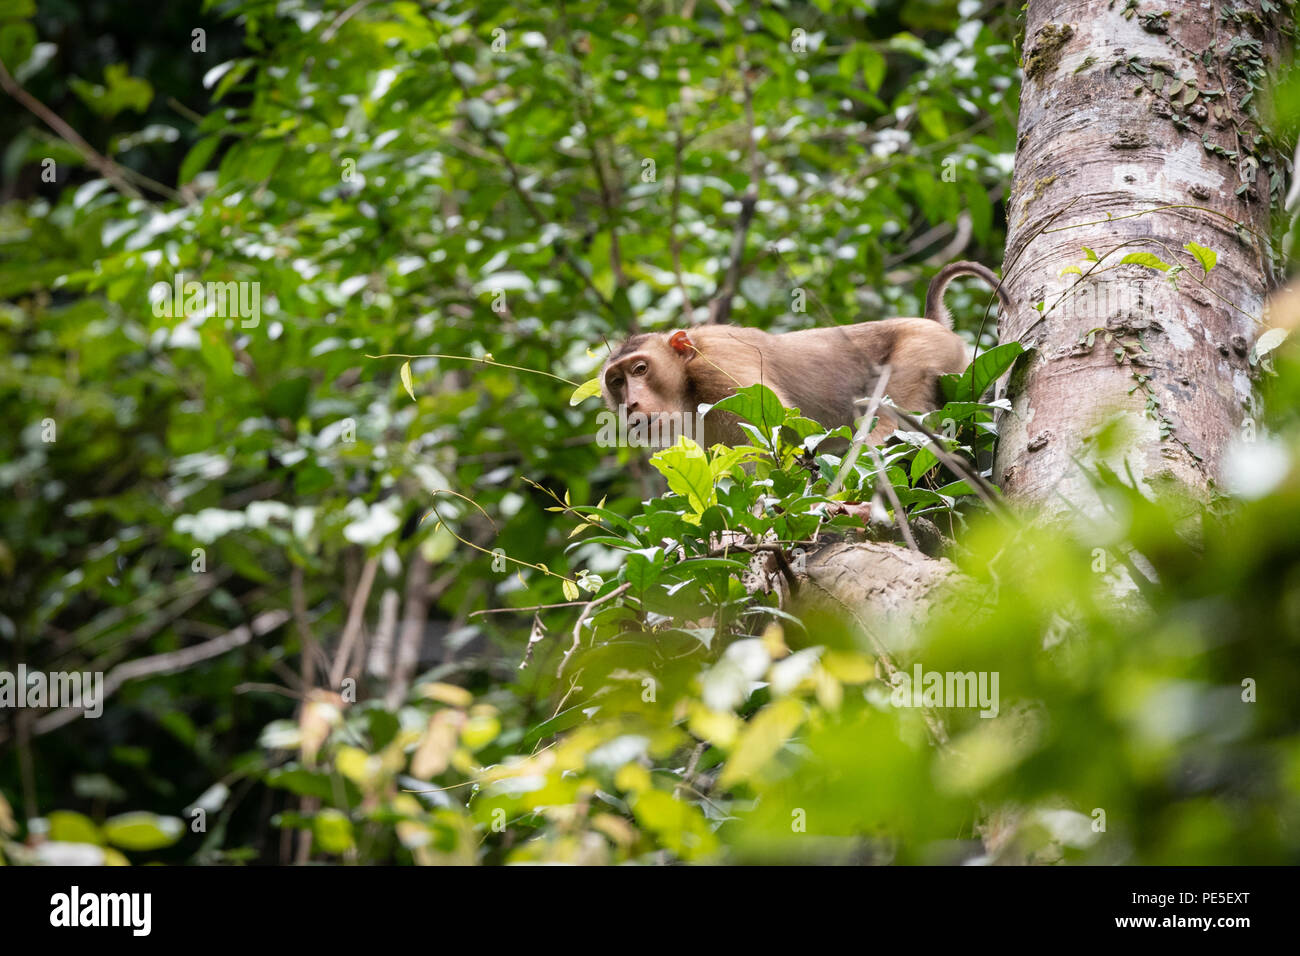 The southern pig-tailed macaque (Macaca nemestrina), also known as the Sundaland pigtail macaque and Sunda pig-tailed macaque. - Stock Image